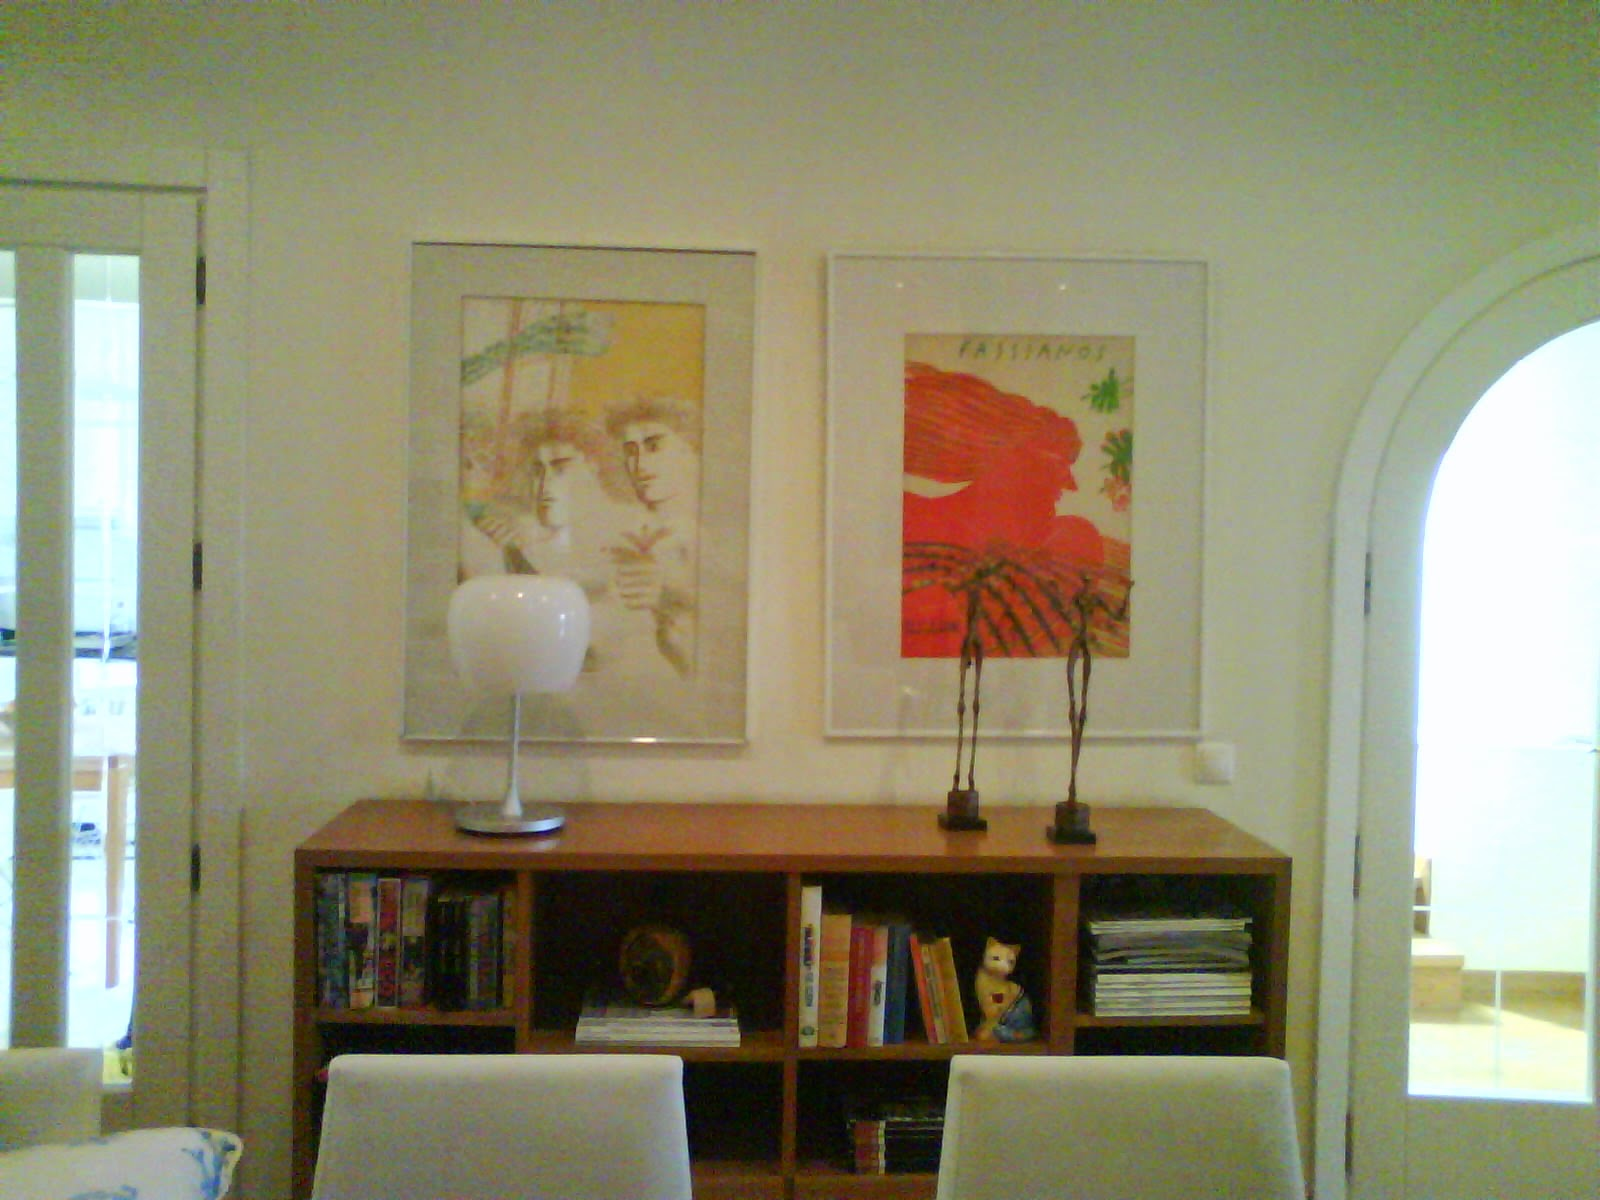 Fassianos lithographs